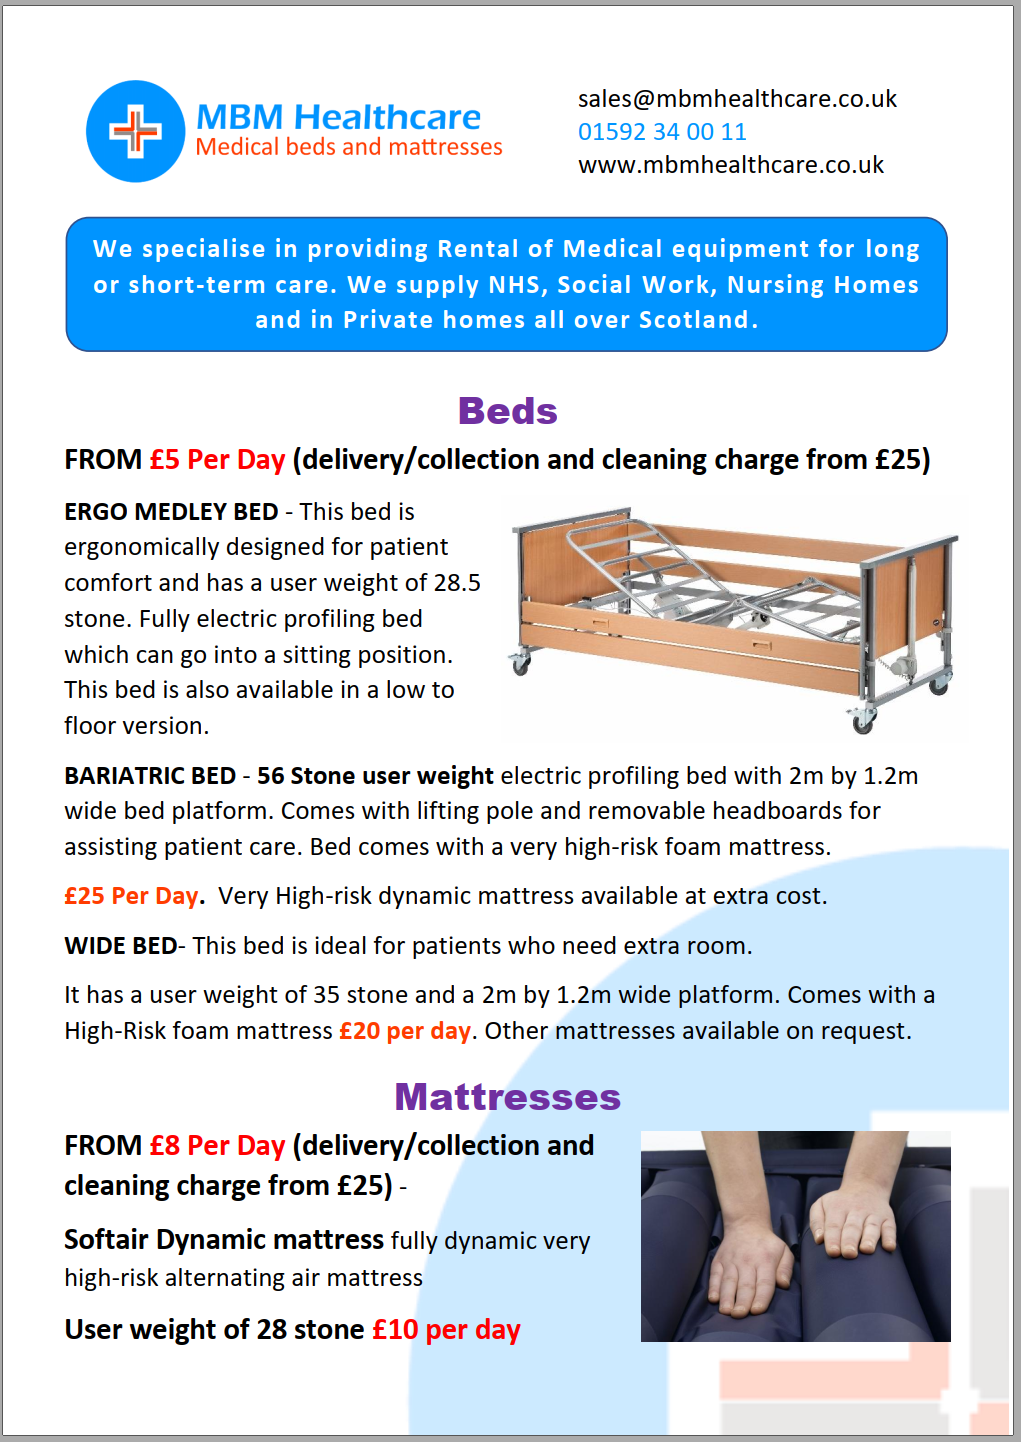 Image preview of medical bed and mattress flyer